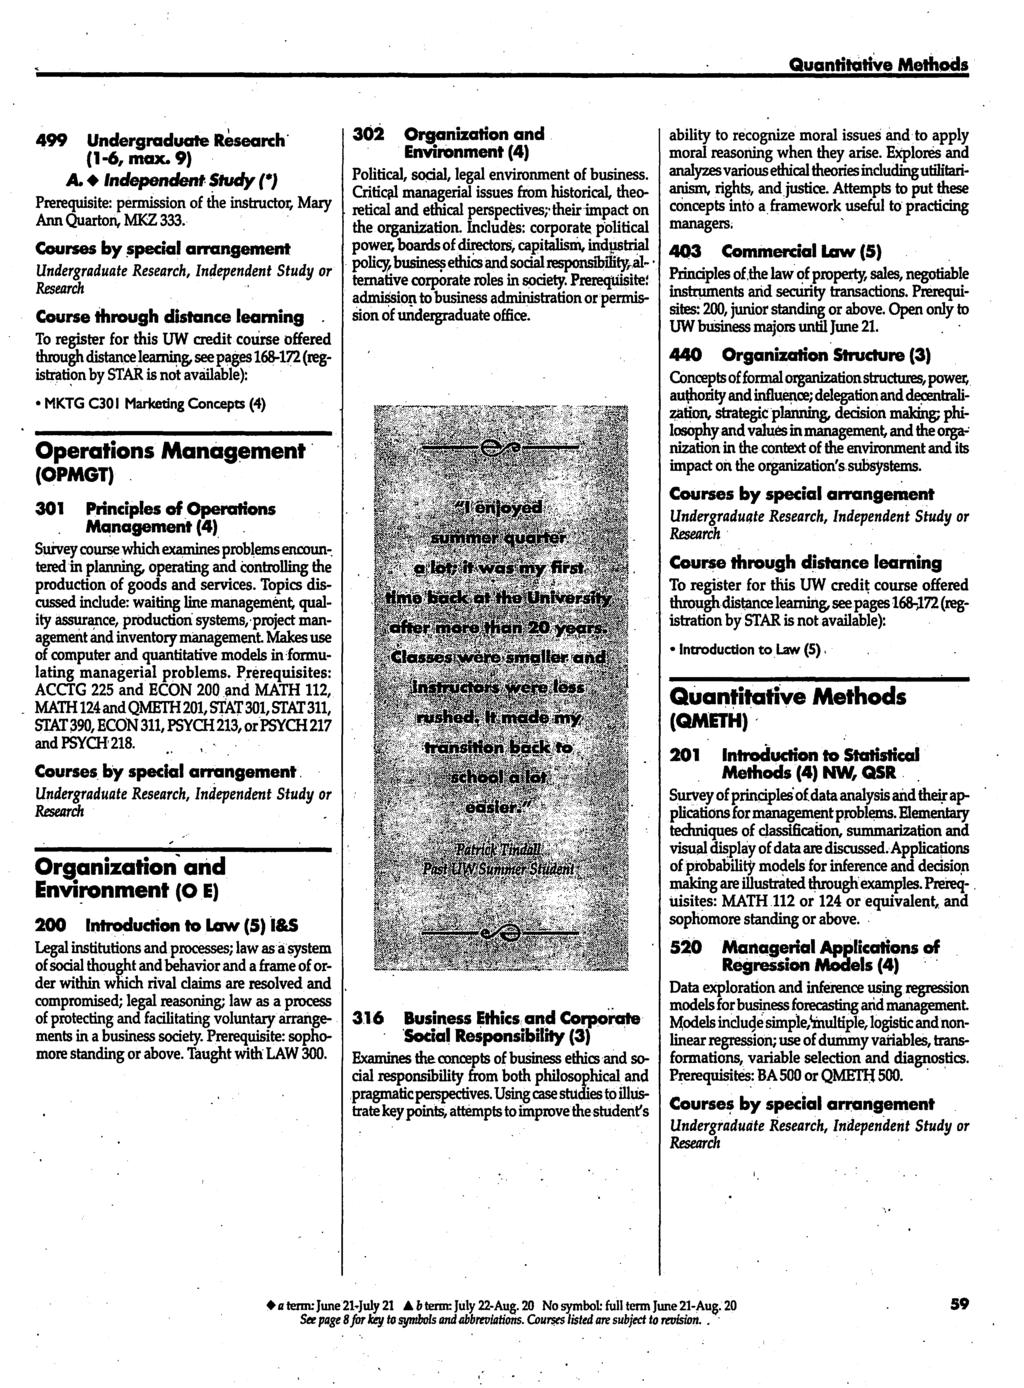 University Of Washington Pdf Back Gt Gallery For Series And Parallel Circuits Kids Worksheets Quantitcle Methods 499 Undergraduate Research 1 6 Max 9